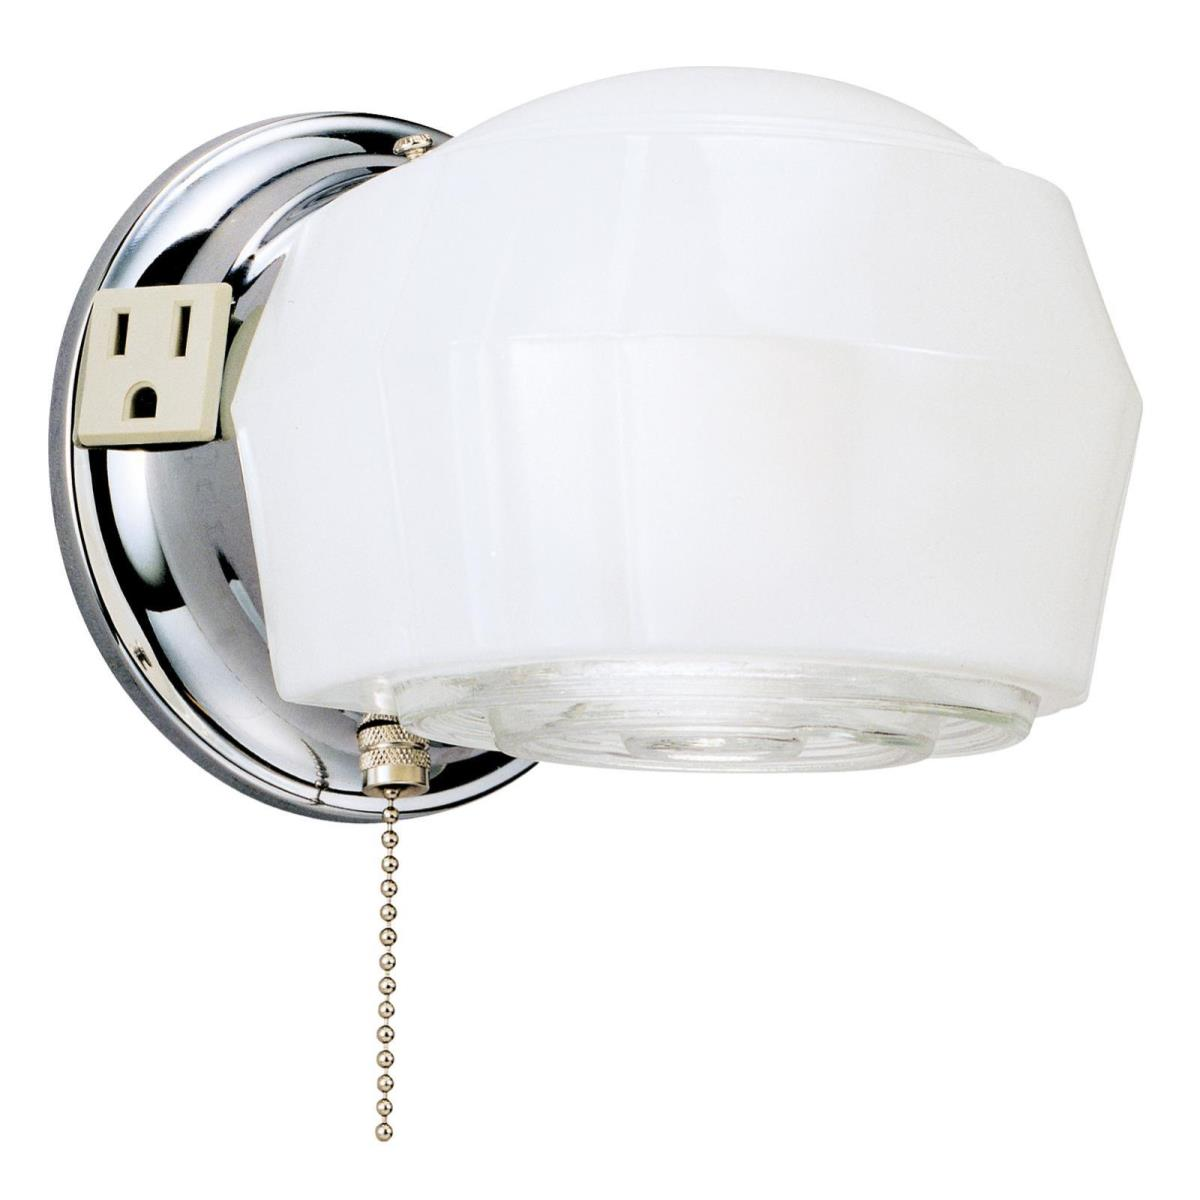 1 Light Wall with Ground Convenience Outlet and Pull Chain Chrome Finish Base with White and Crystal Glass